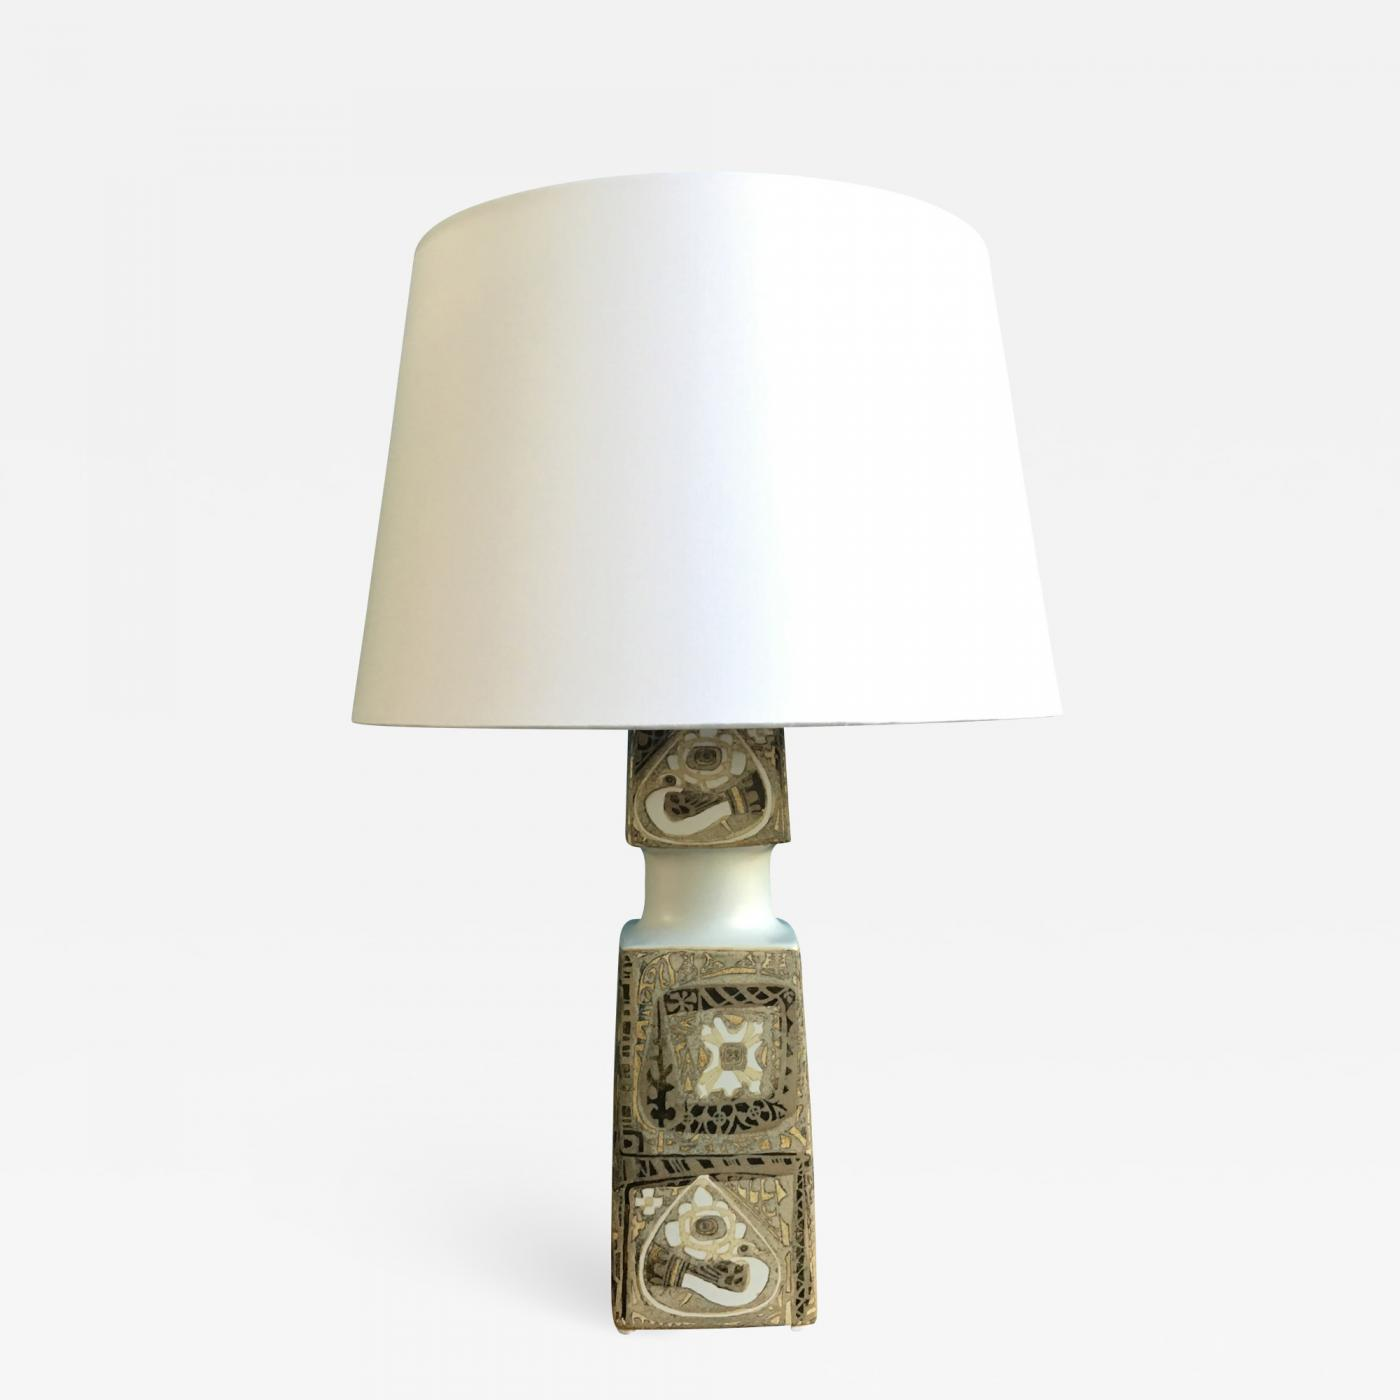 Vintage Table Lamps Nils Thorsson Mid Century Vintage Table Lamp By Nils Thorsson For Fog Morup 1960s